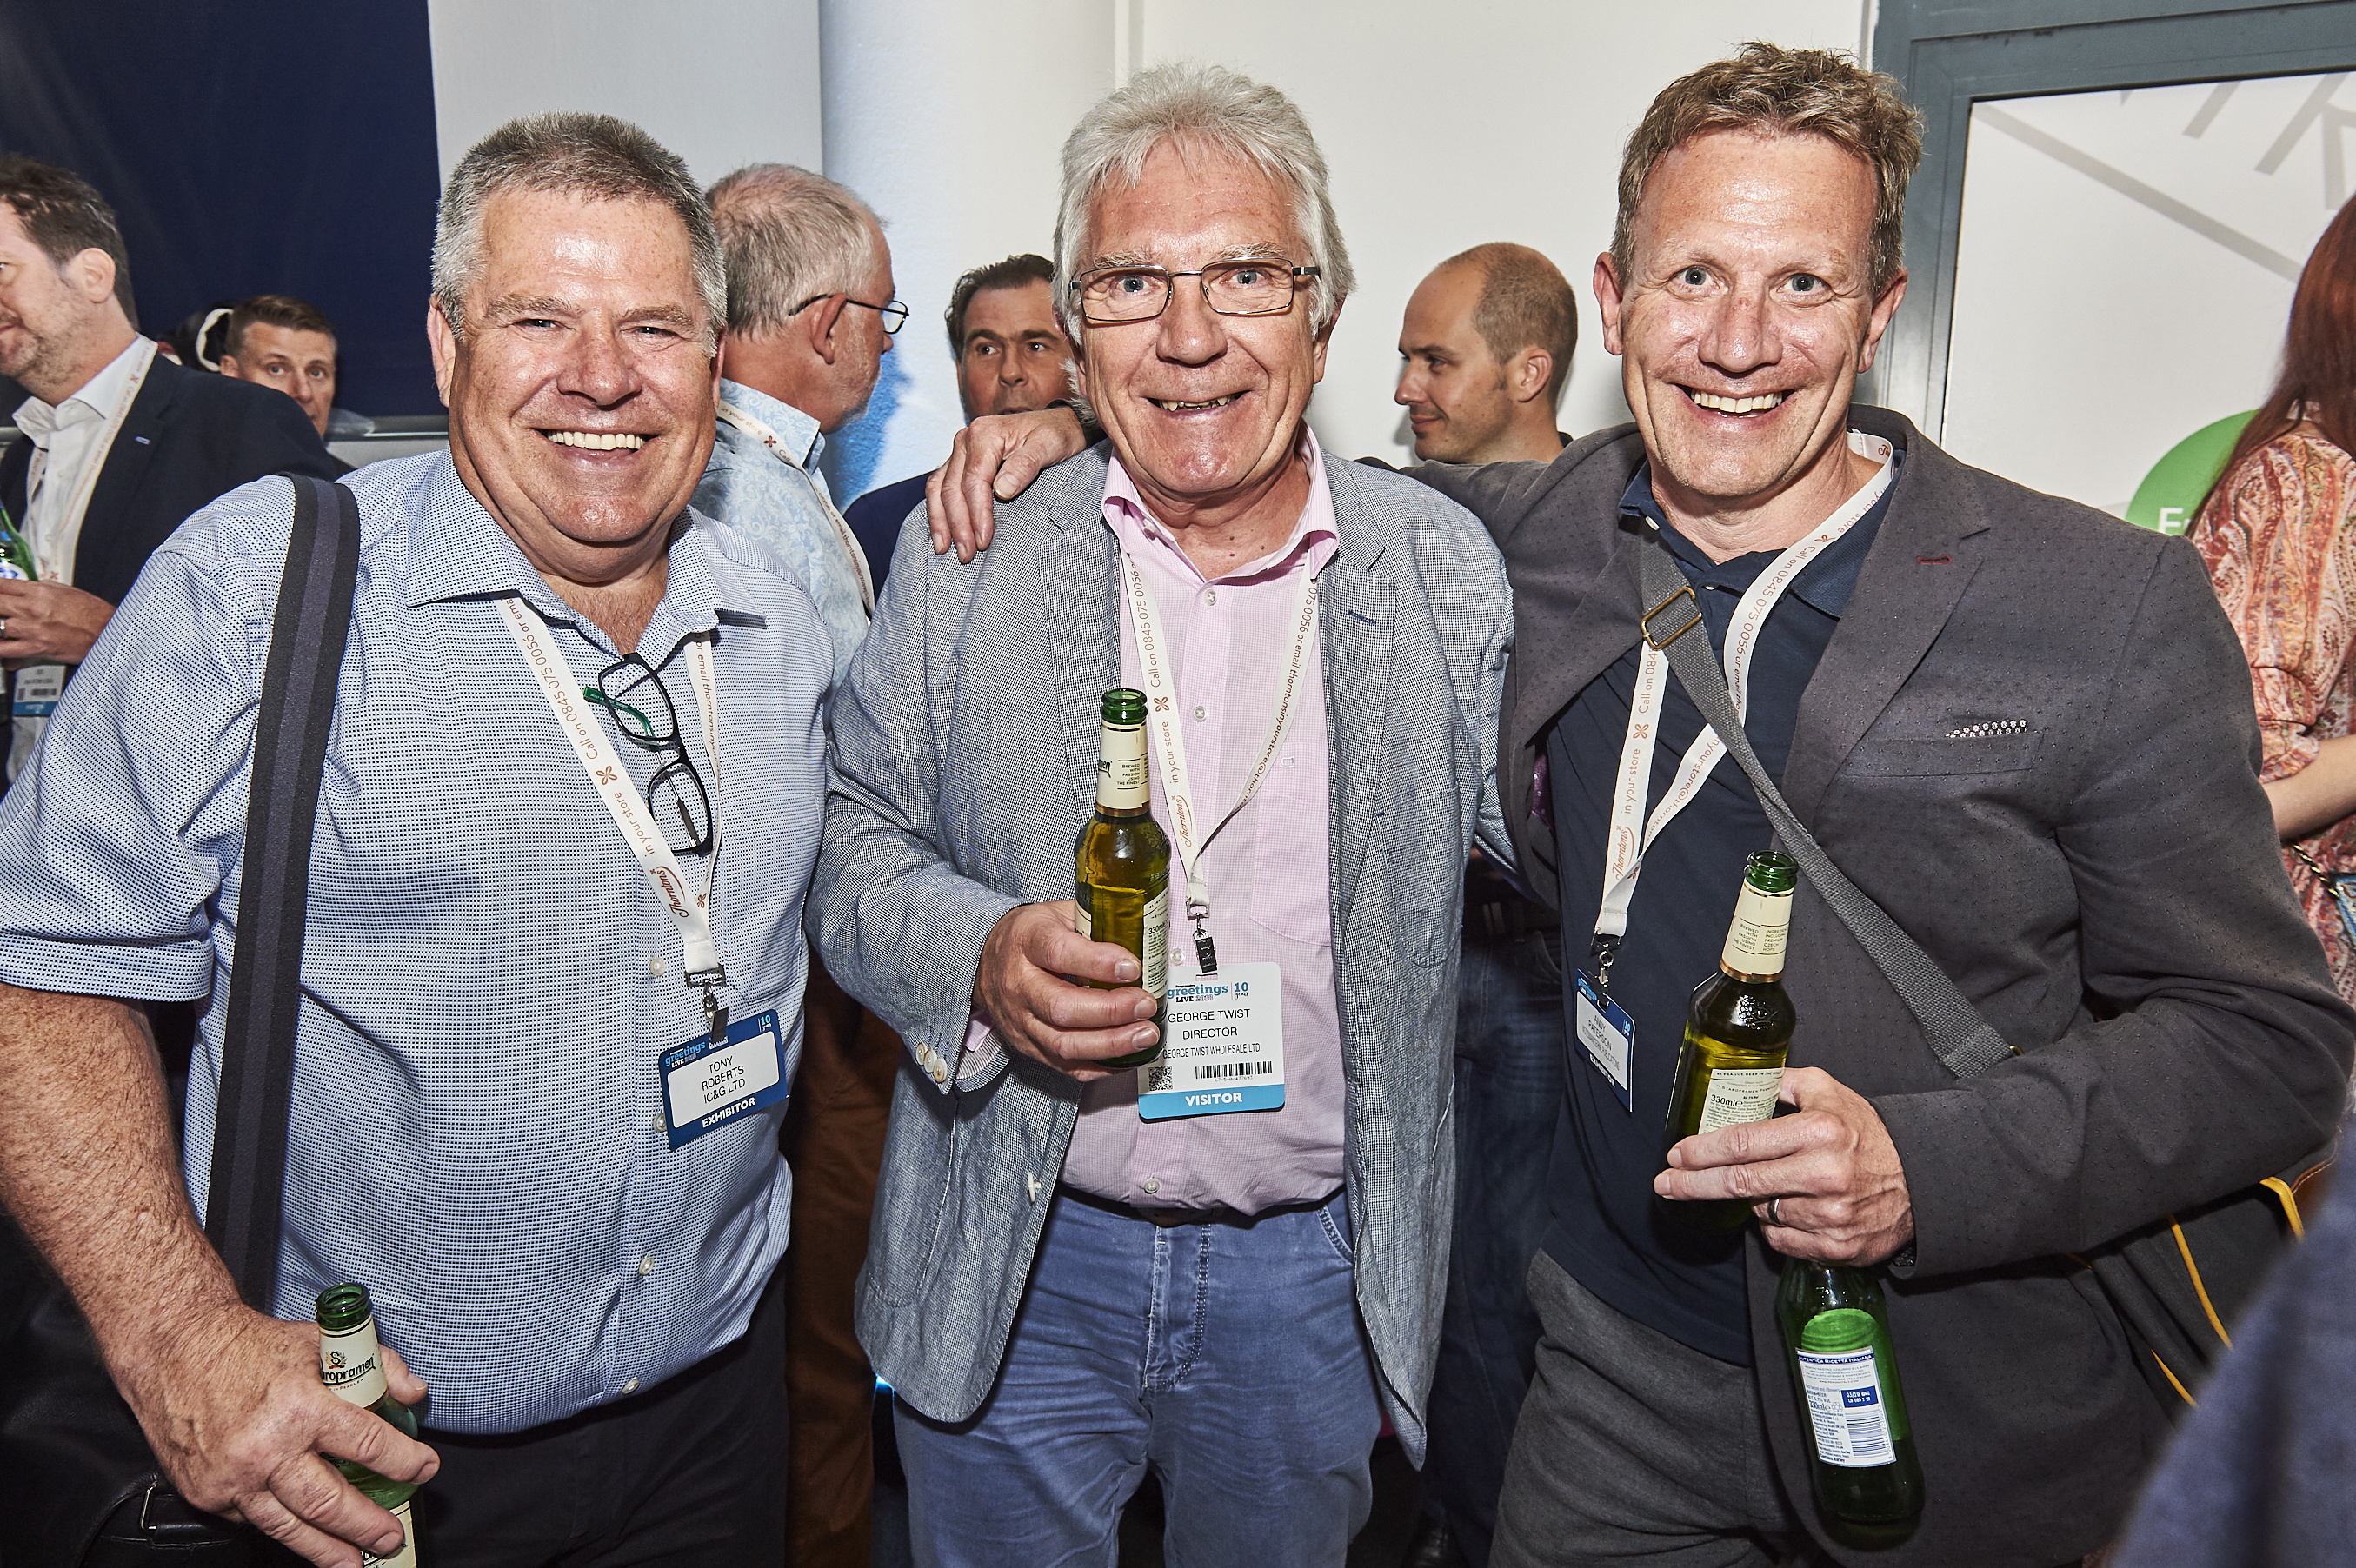 Above: Tony (left) with former Gibsons colleague (right) Andy Paterson (now sales director of Woodmansterne) and customer George Twist, managing director of Gee Tees, at the PG Live opening night party.